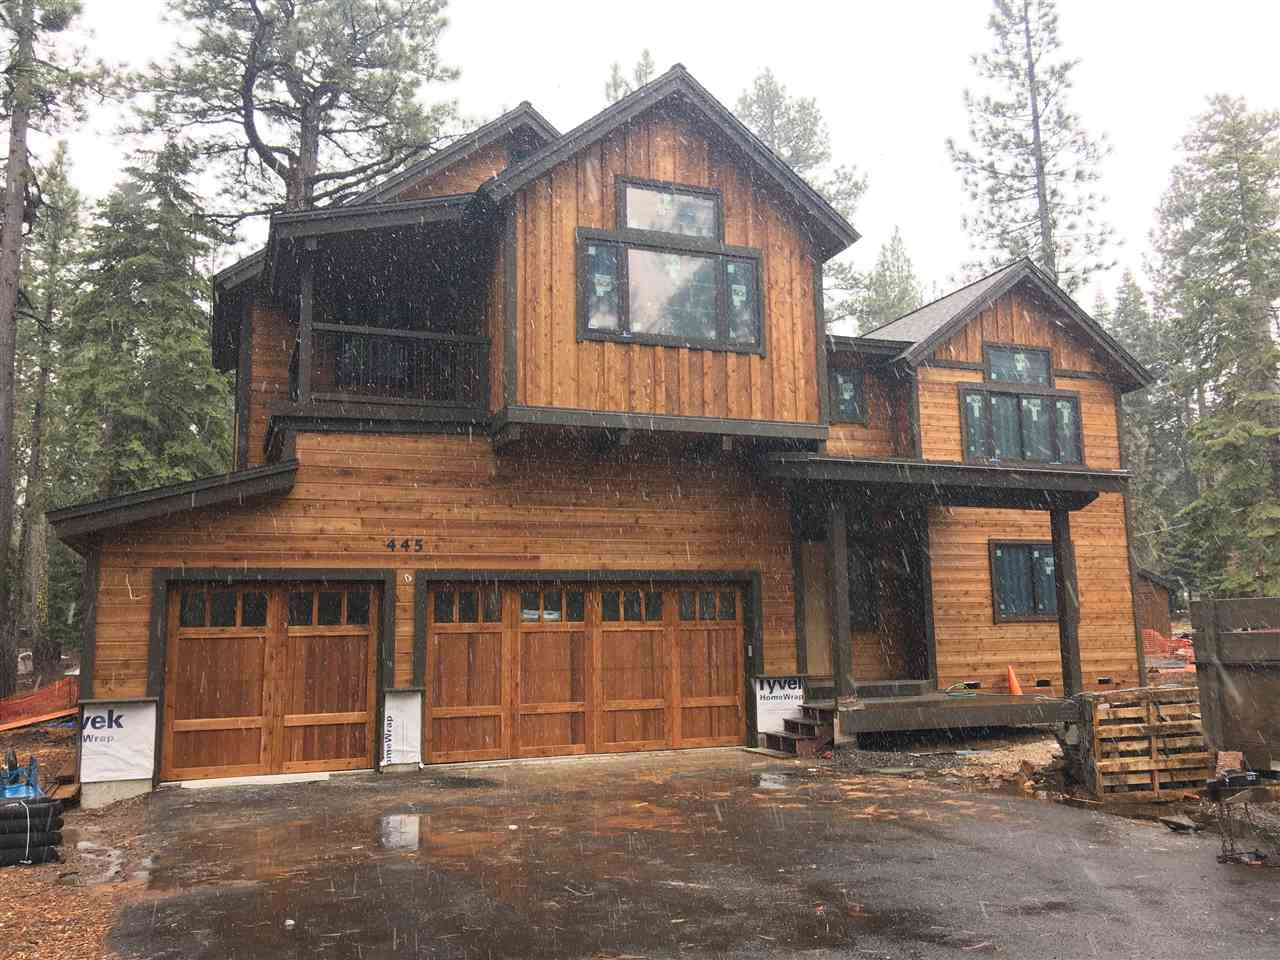 Image for 445 Pineland Drive, Tahoe City, CA 96145